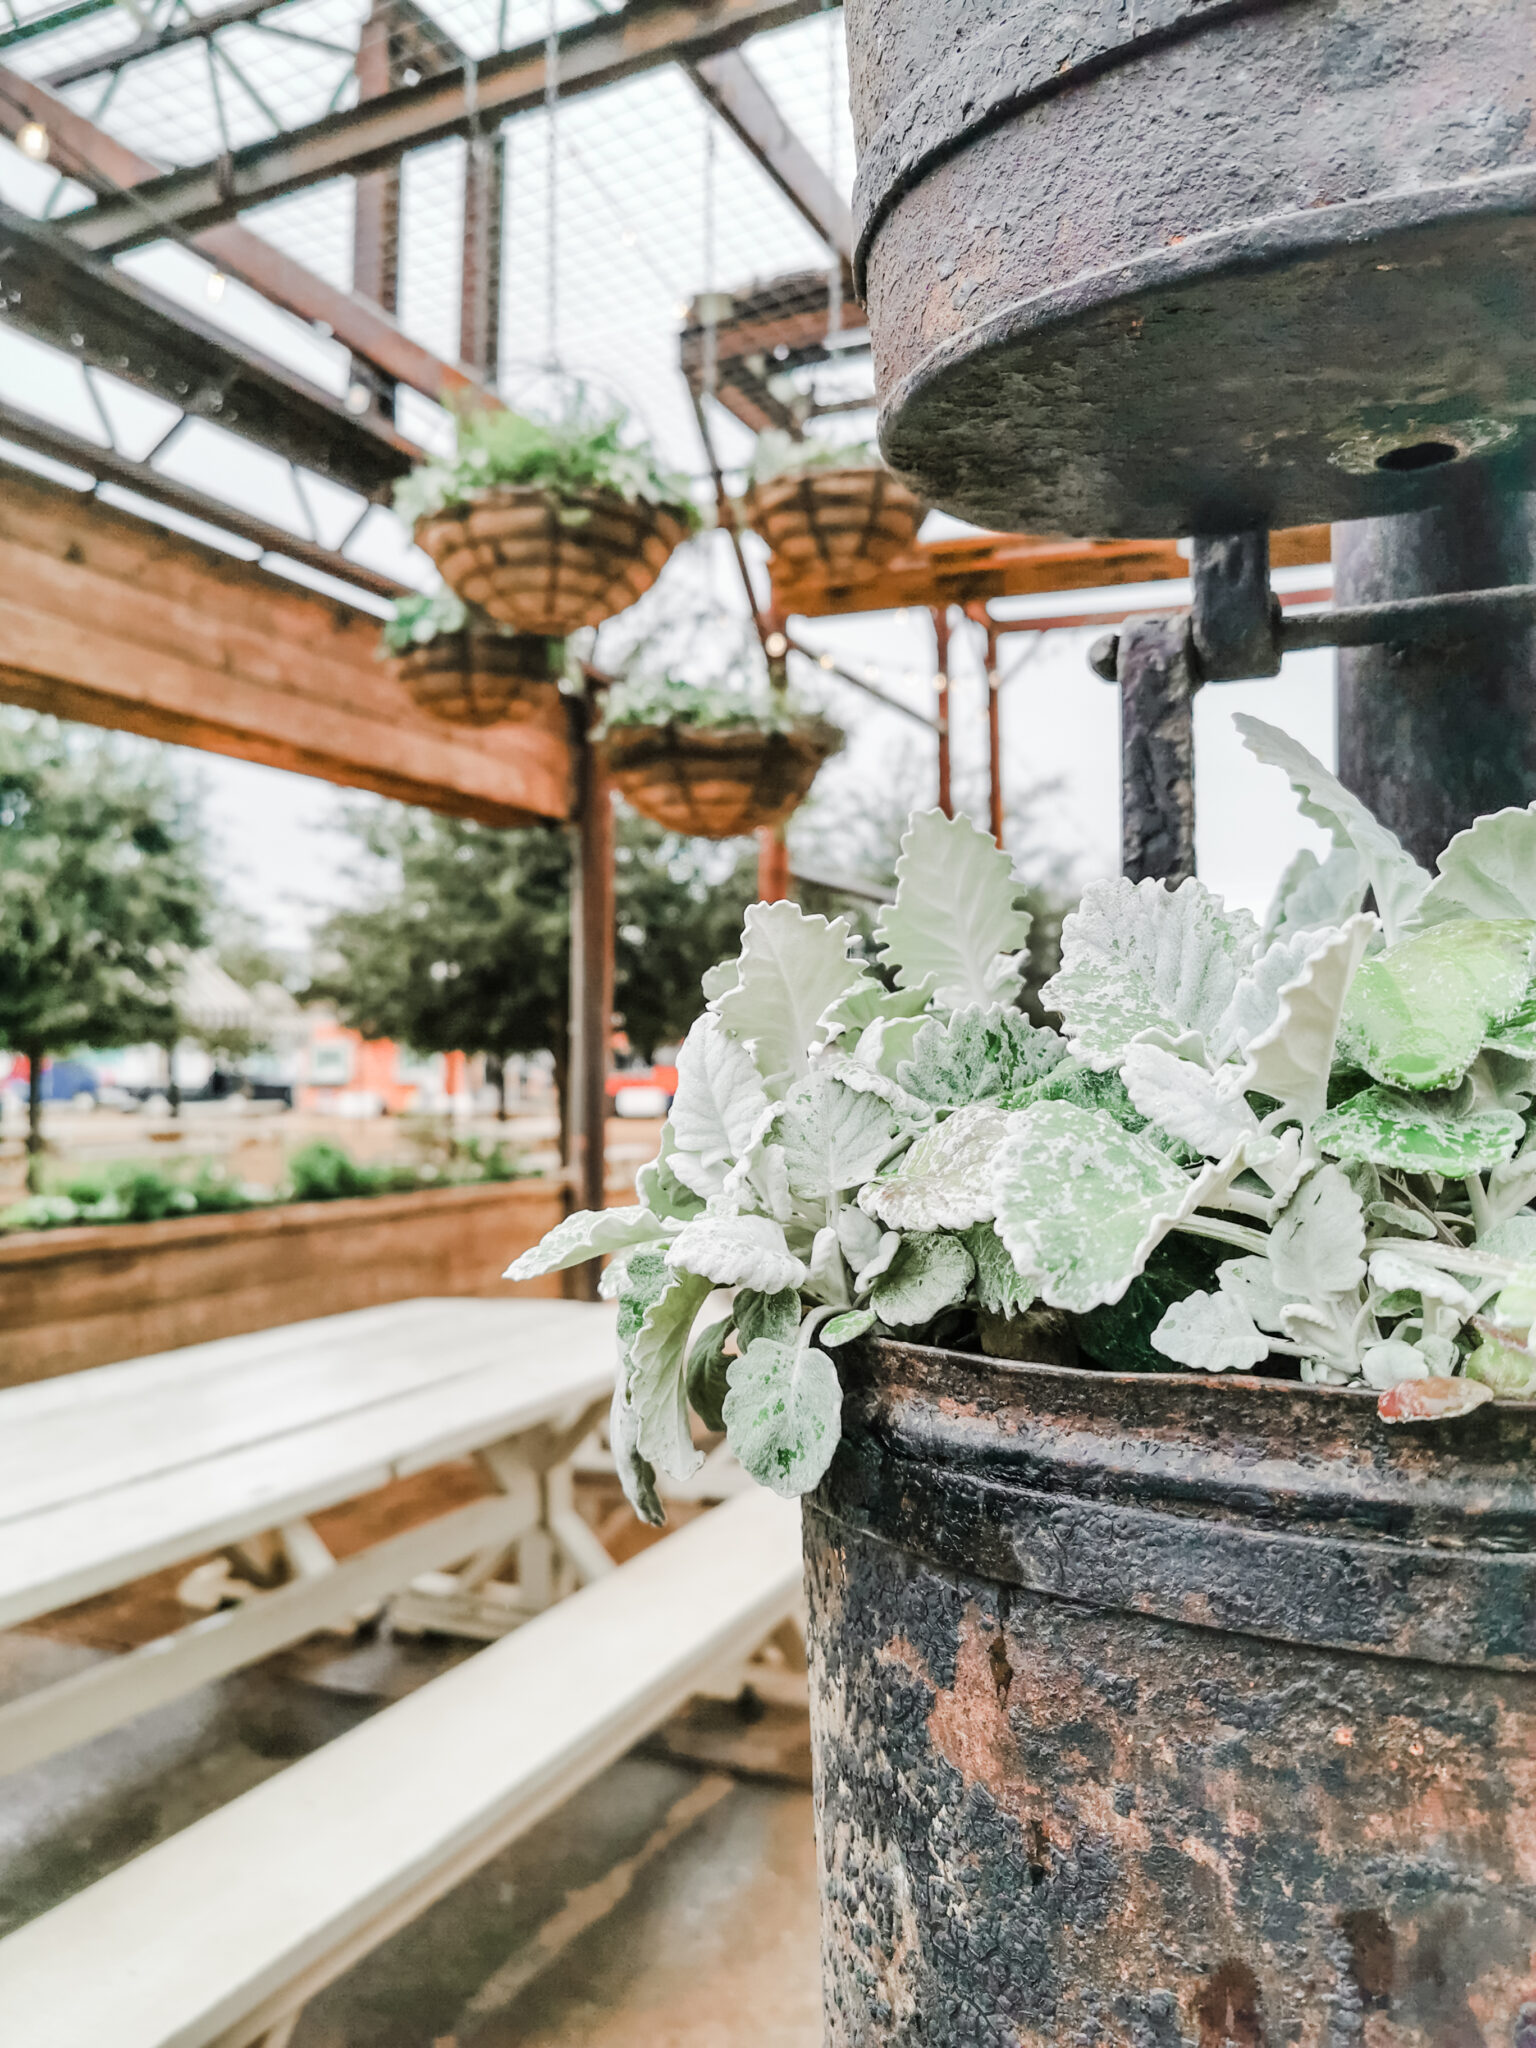 Old and rustic planter pots with greenery. A picnic dining area in Magnolia Market.